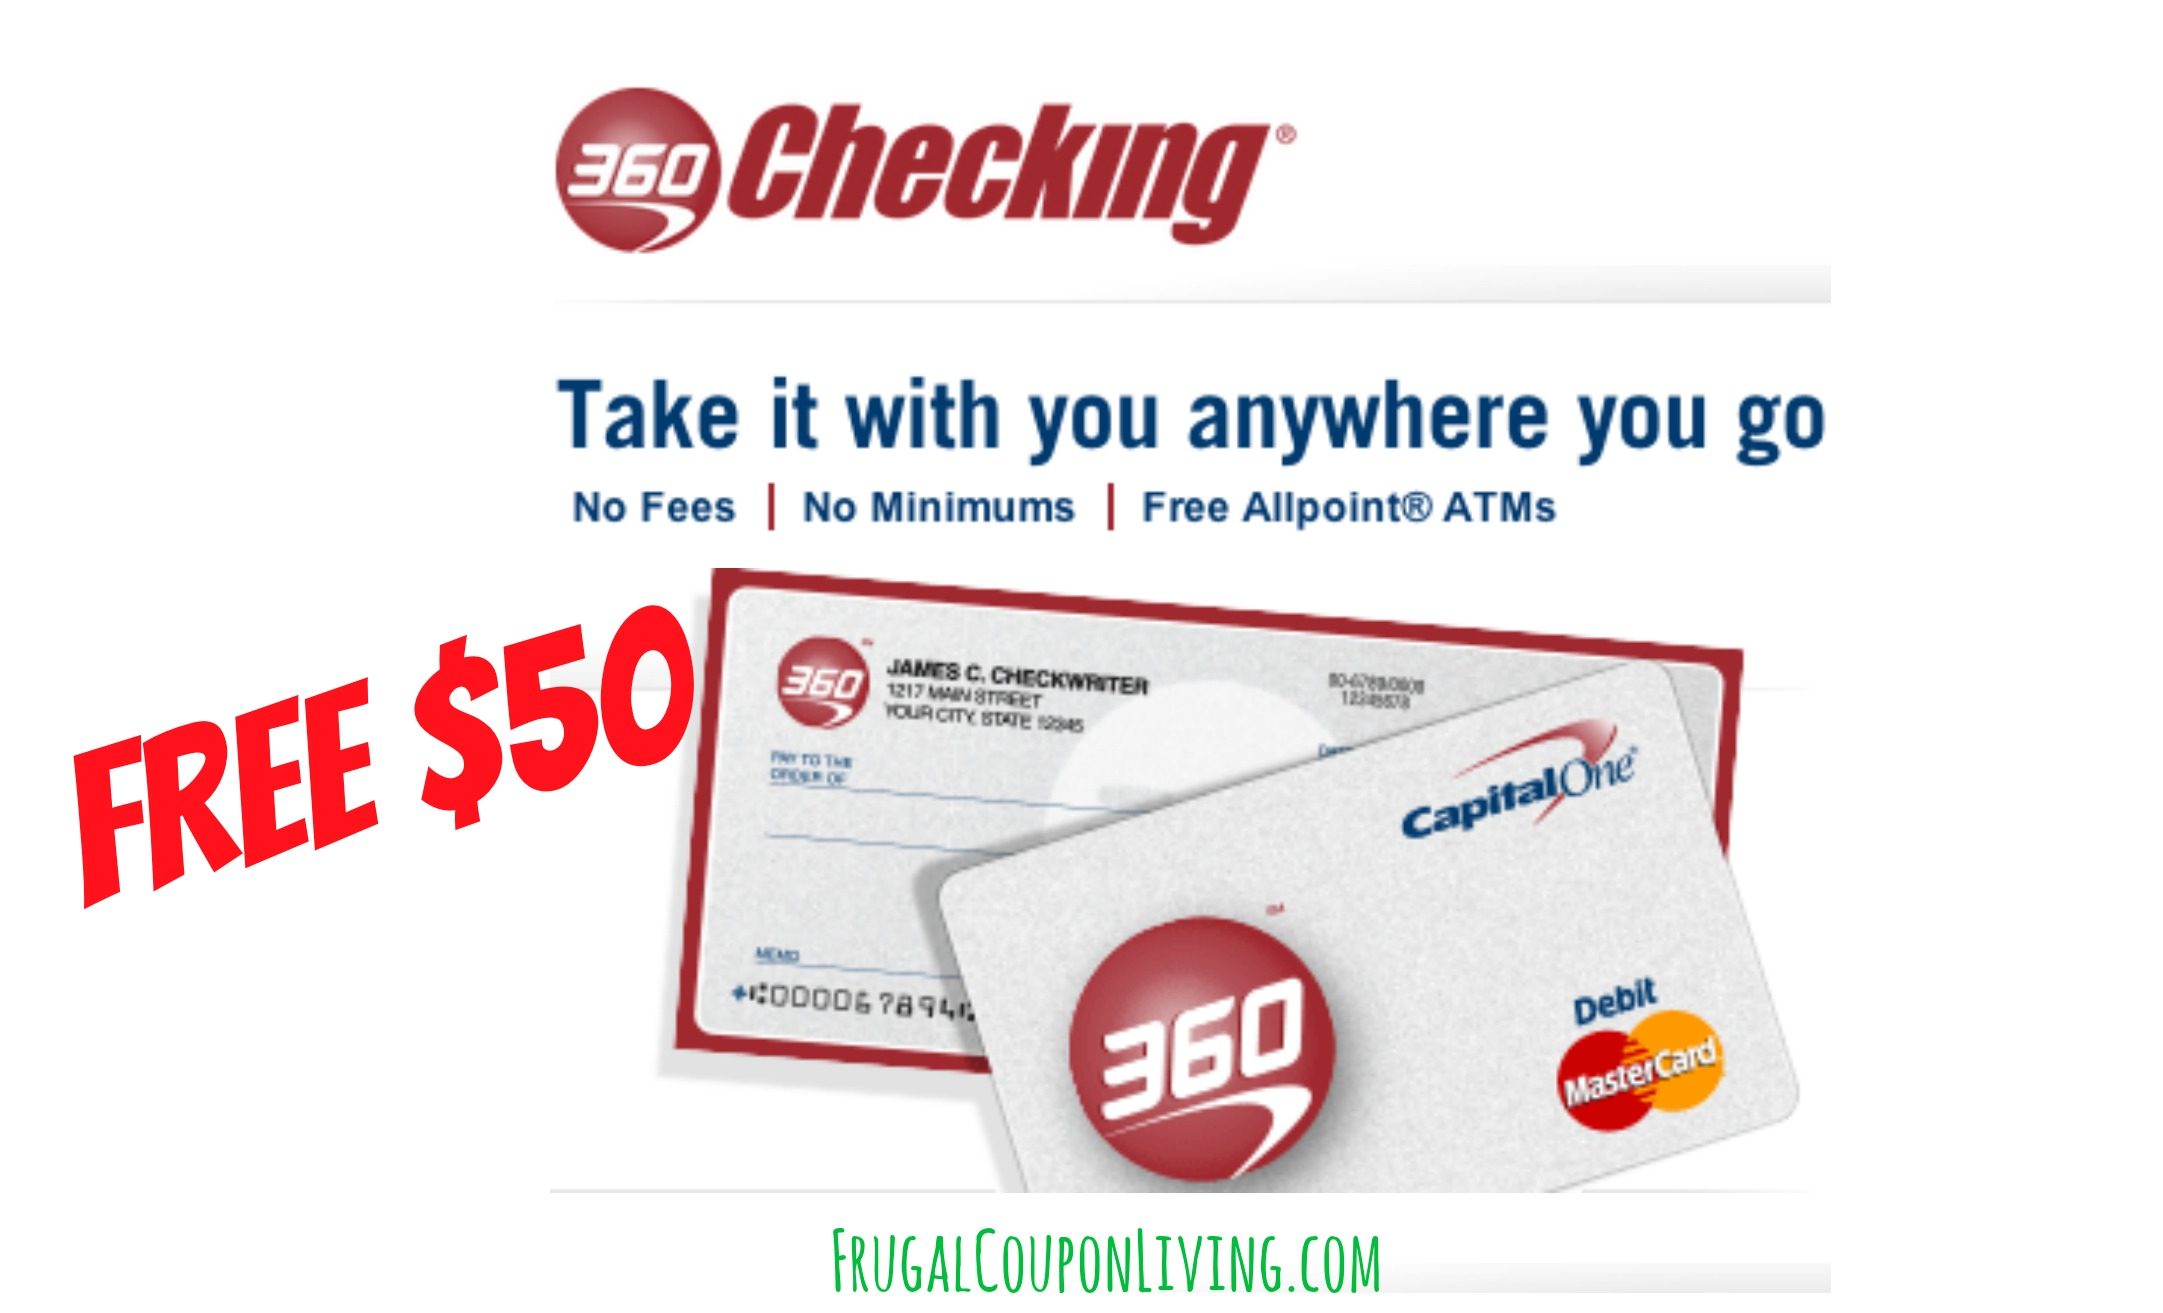 50 Cash Back with 360 Checking from Capital One